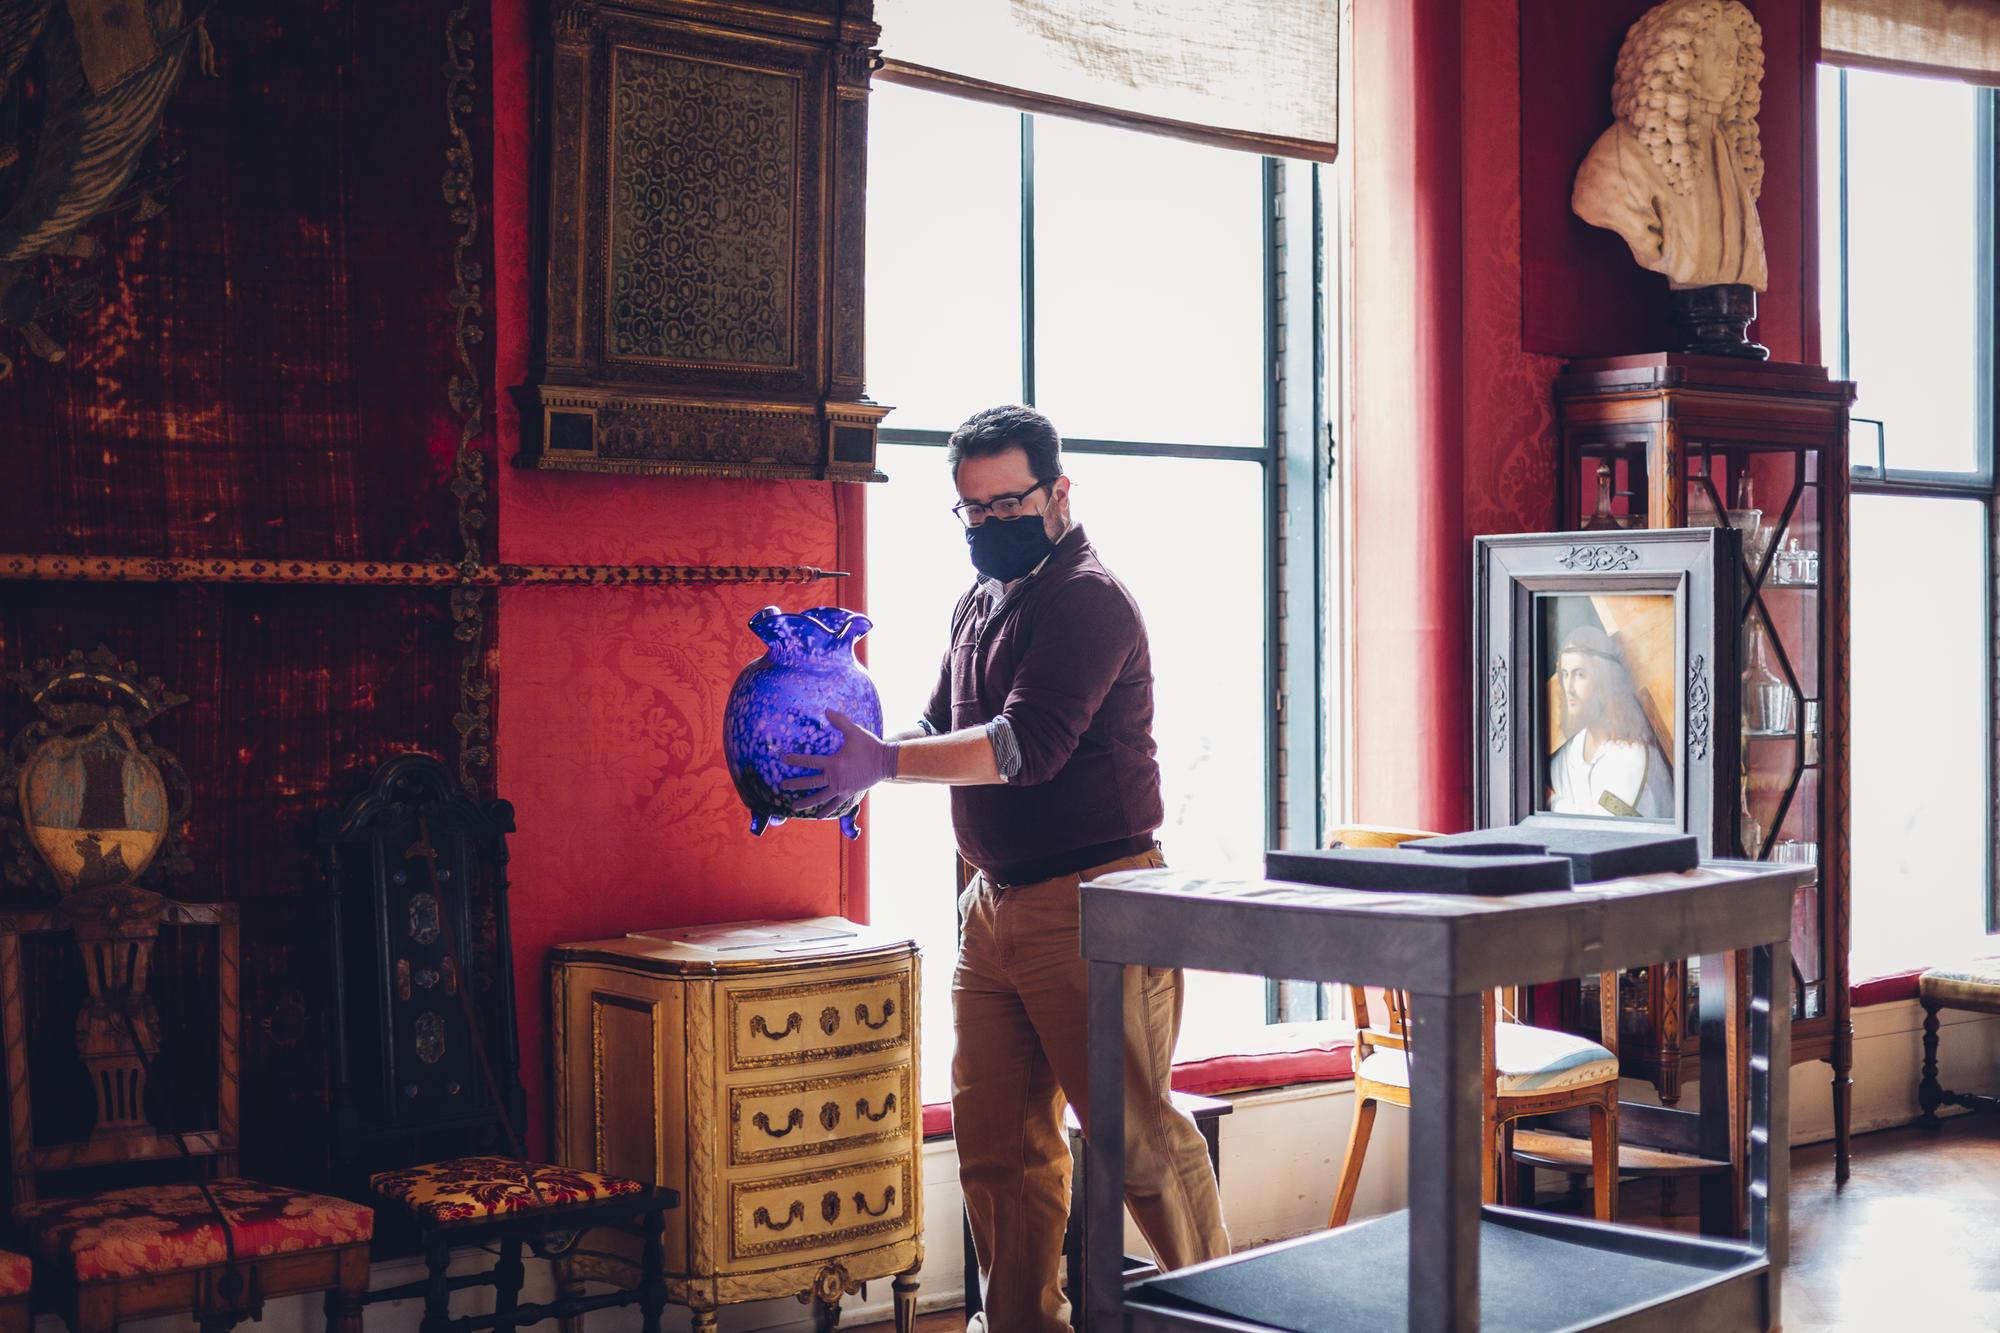 Matt DelGrosso moves an object in the Titian Room